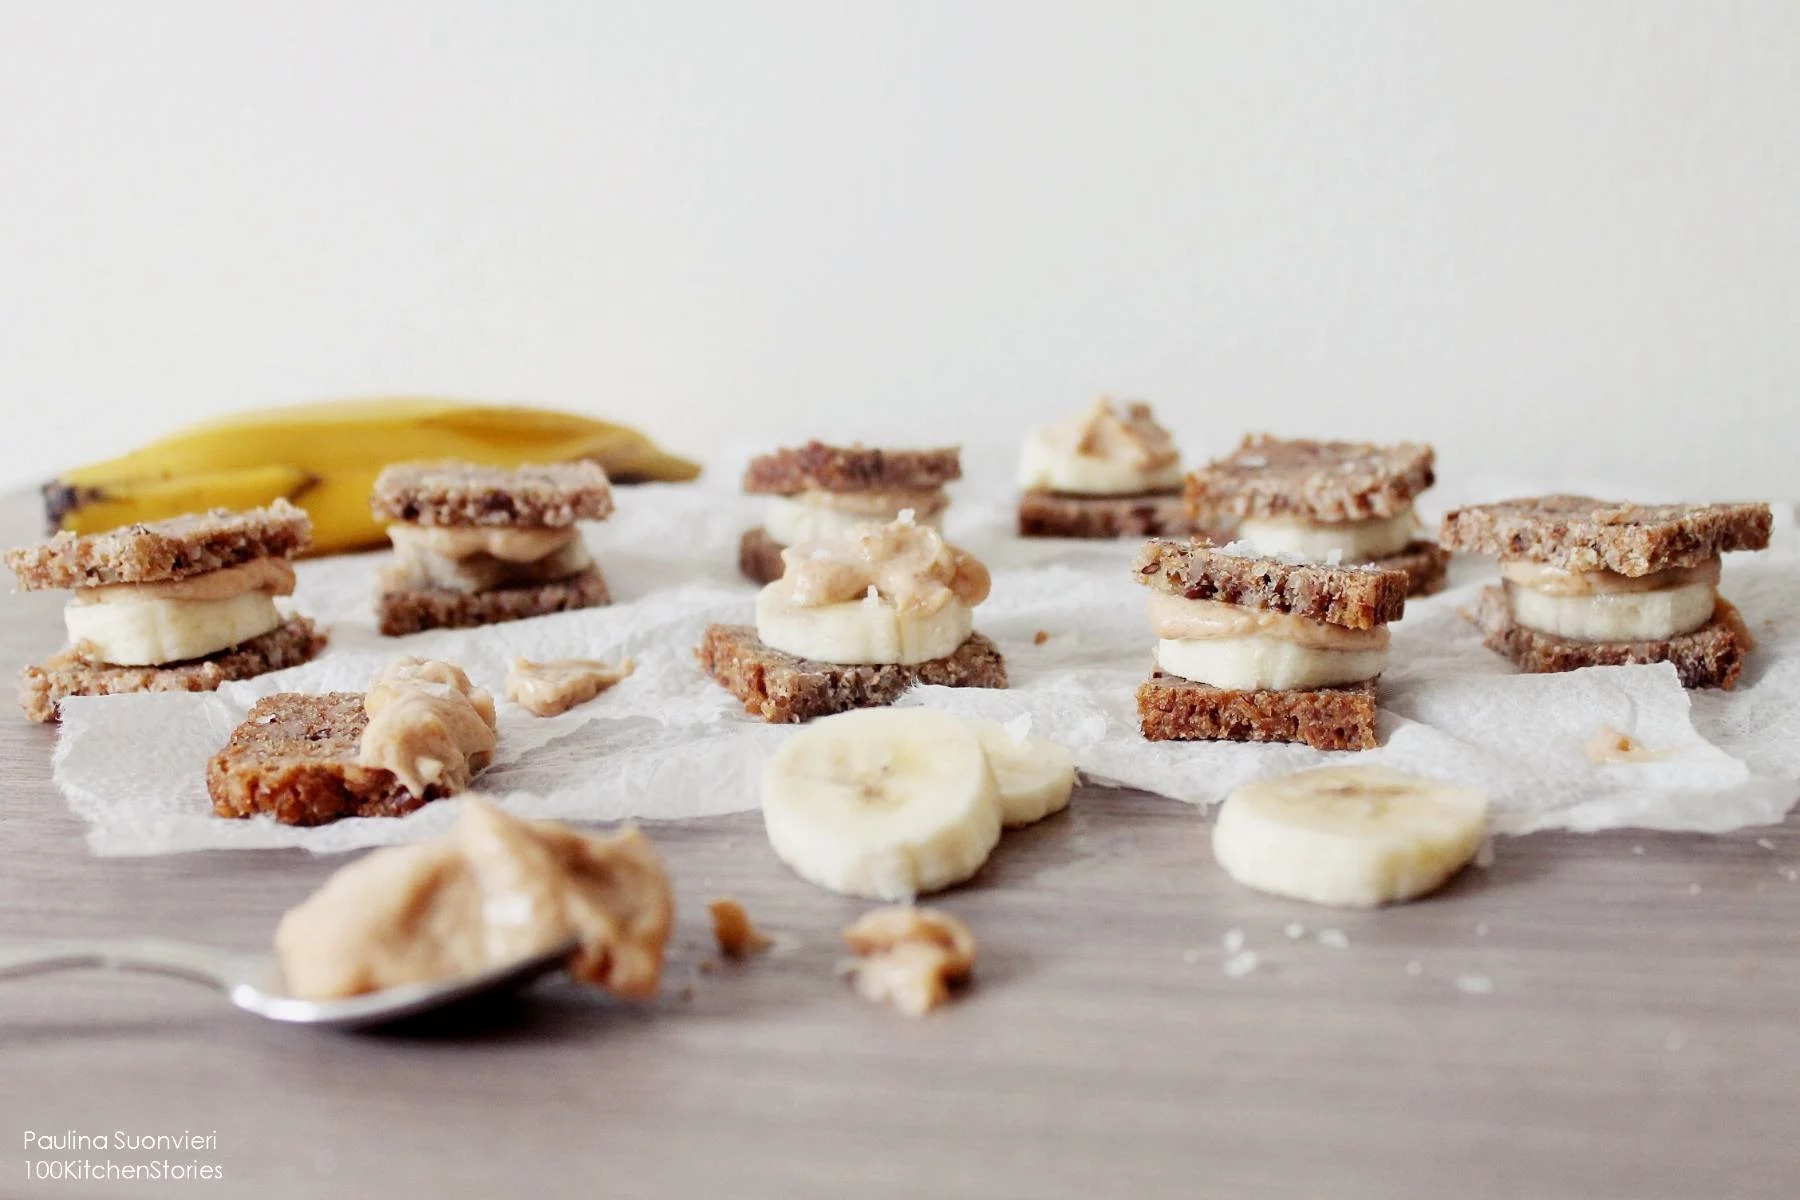 """Sandwich Cakes"" with Banana, Sea Salt & PB- Caramel Spread"